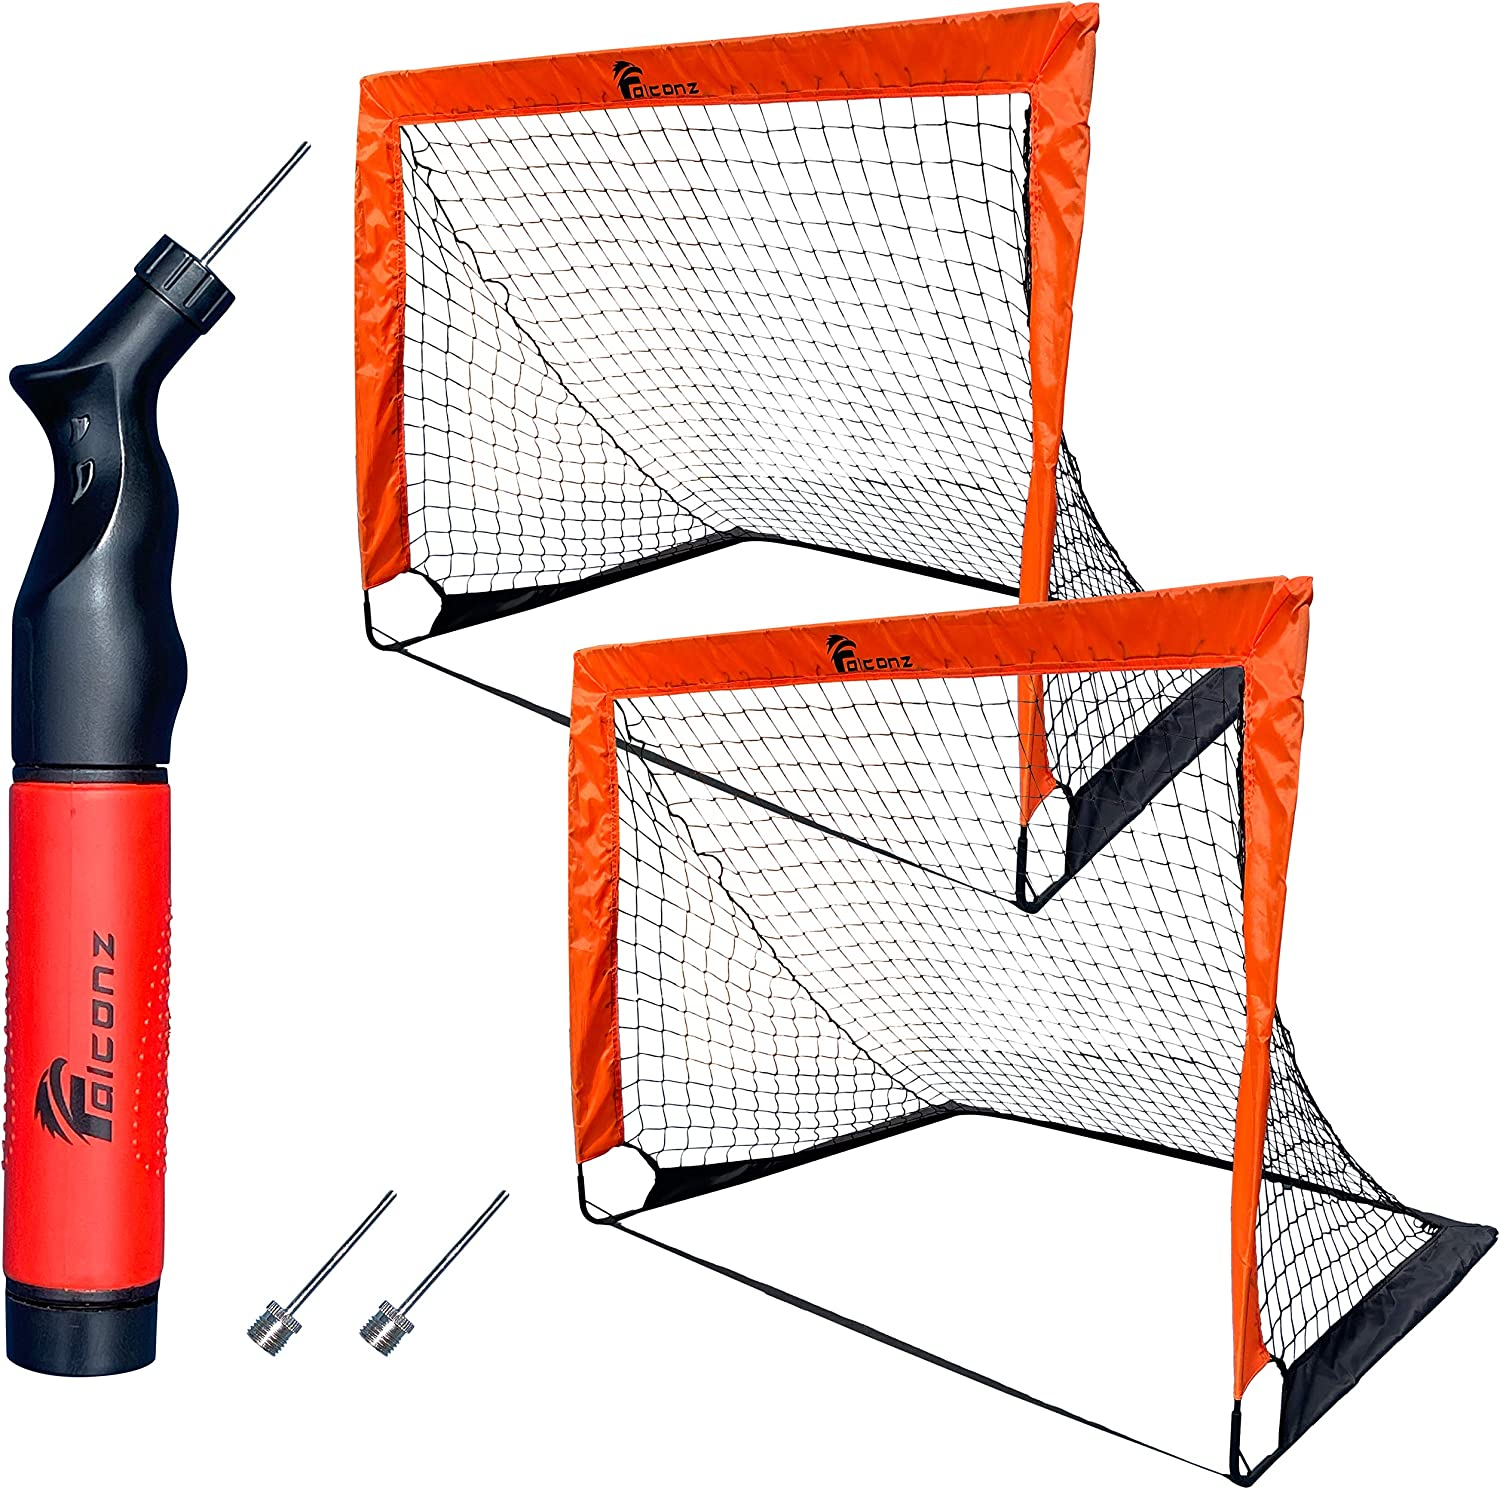 Elegant Falconz Soccer Net Set - 2 Backyard 1 Goals and Ball Free shipping anywhere in the nation for